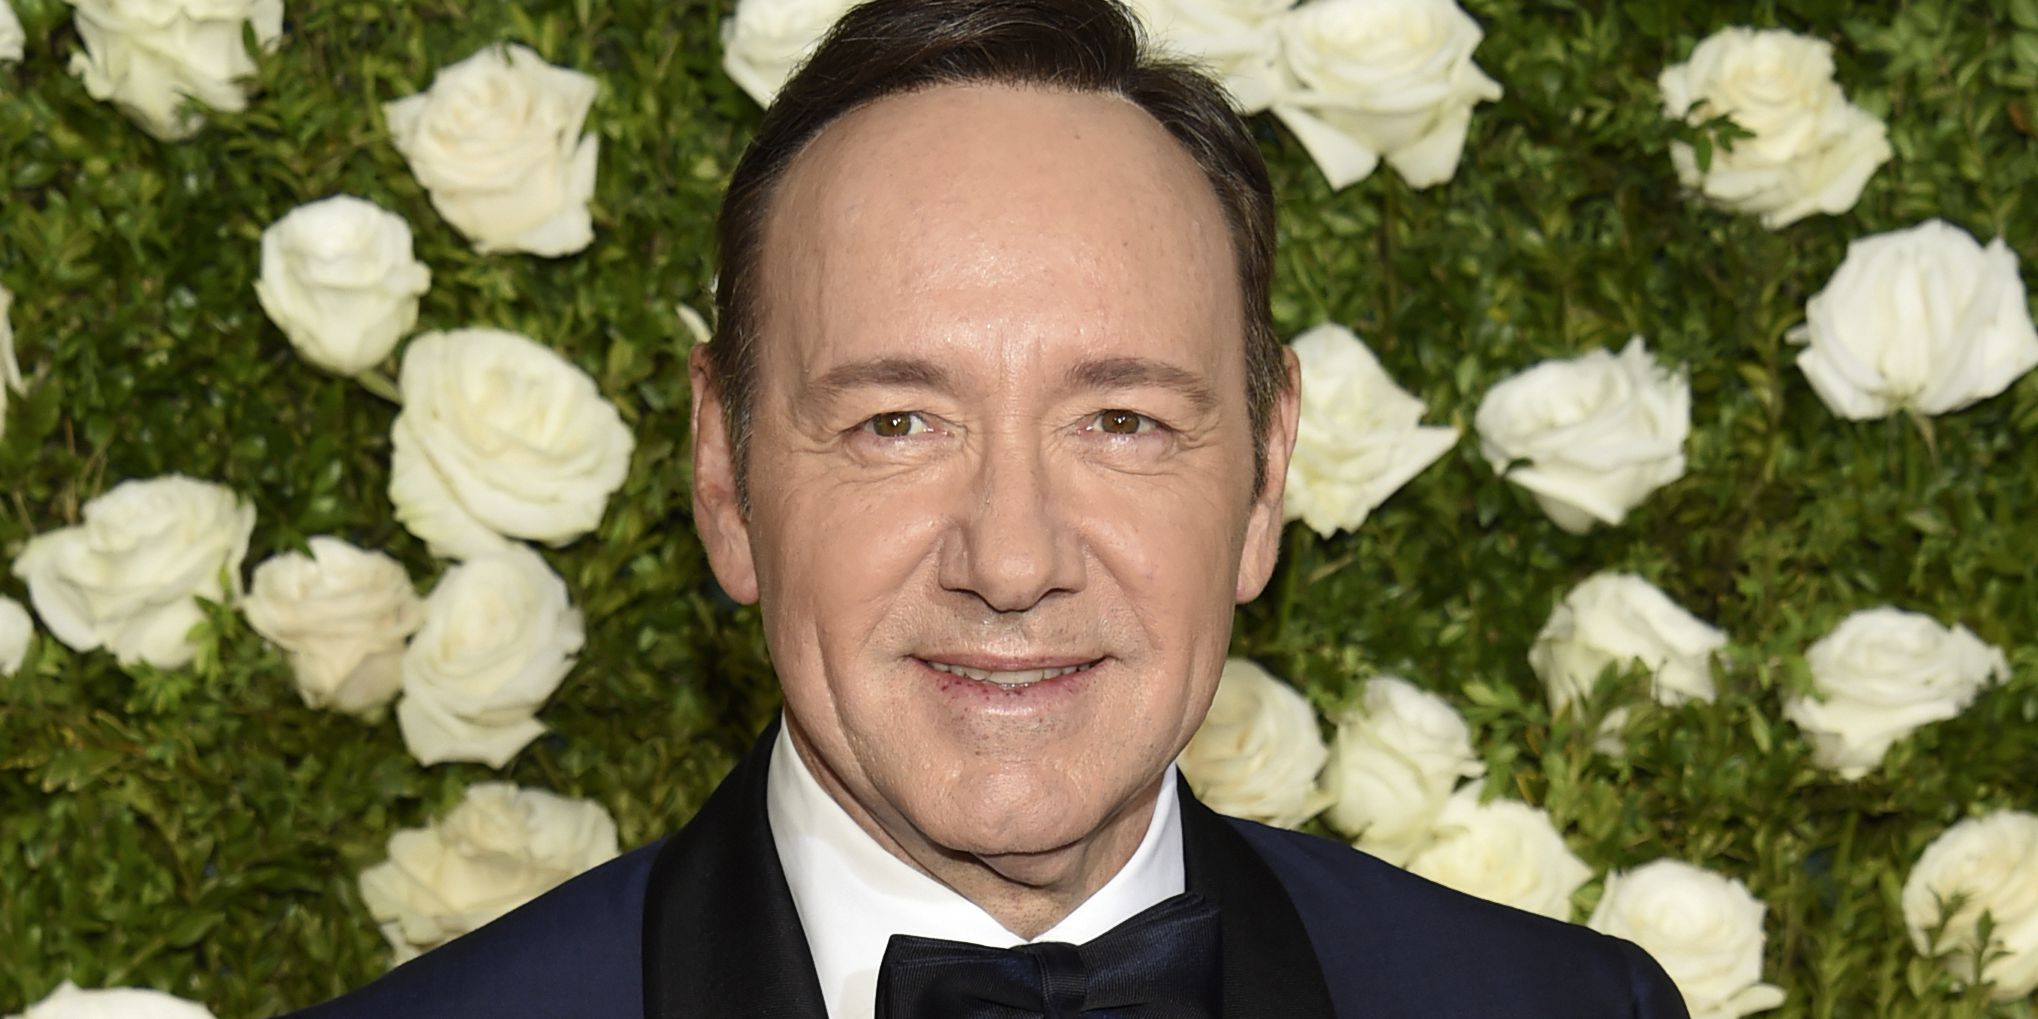 Judge orders Kevin Spacey accuser to reveal his identity